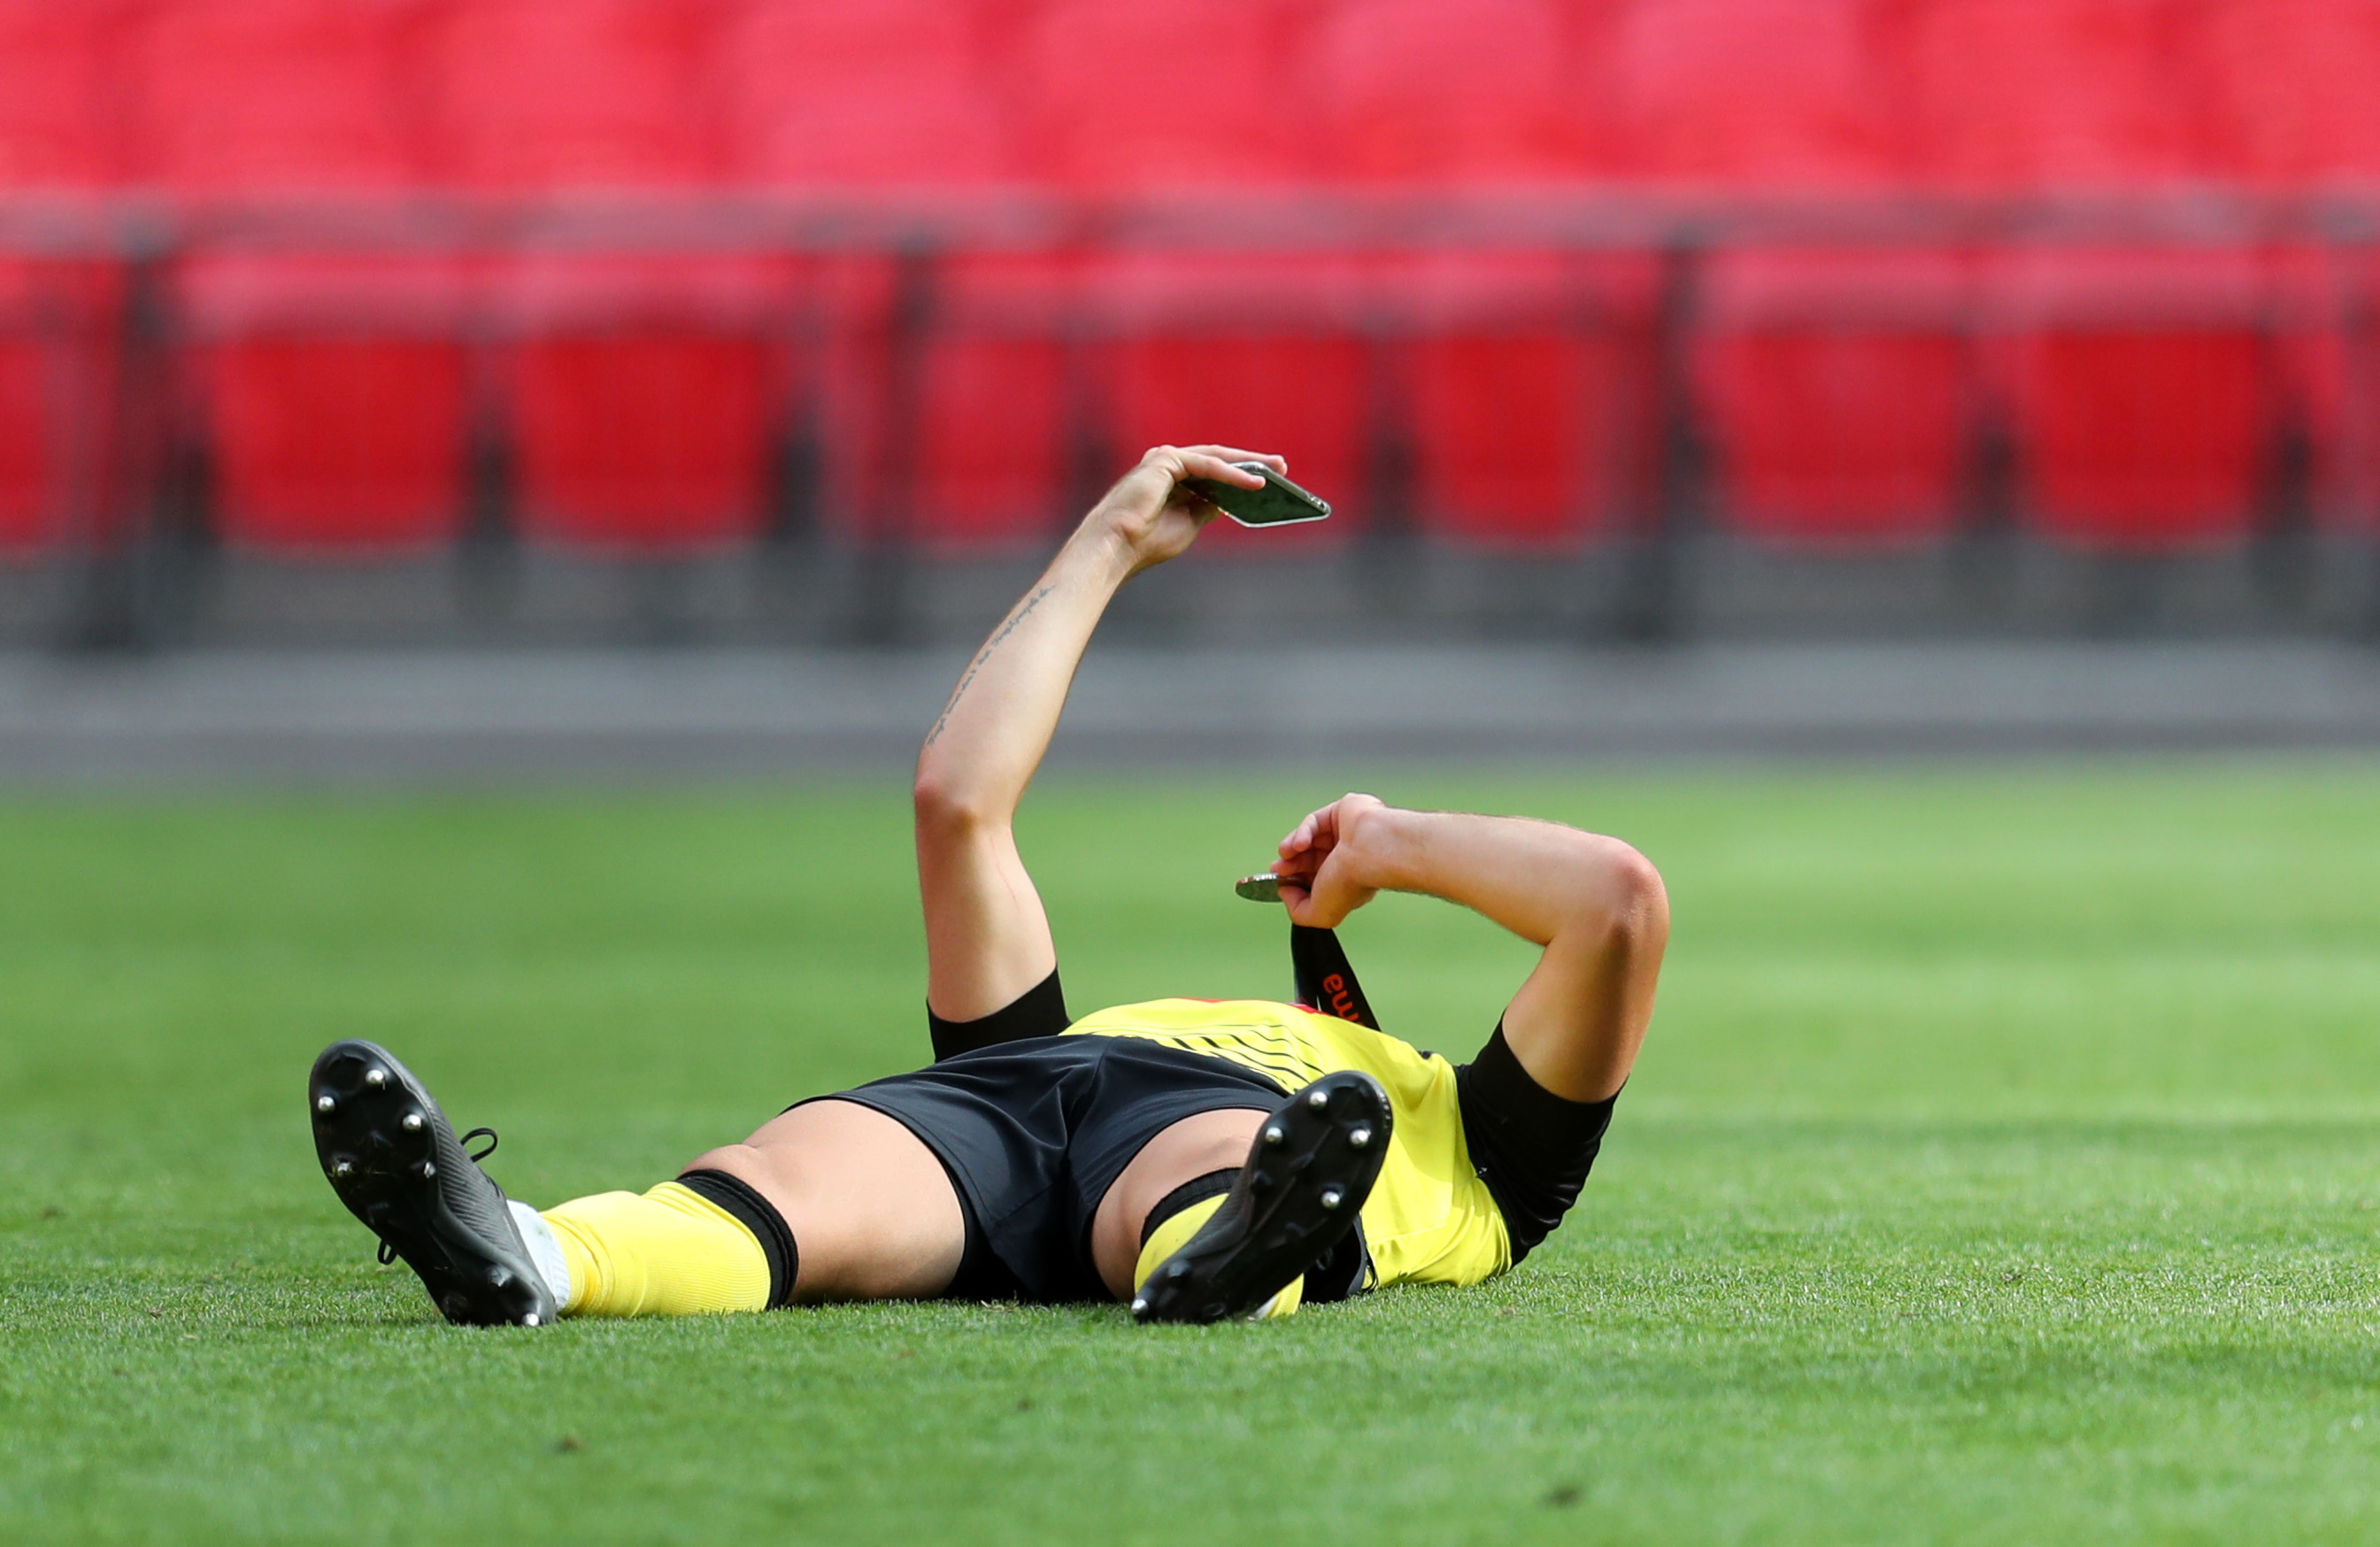 LONDON, ENGLAND - AUGUST 02: A Harrogate Town player holds up his medal as he talks to someone on his phones following the Vanarama National League Play Off Final match between Harrogate Town and Notts County  at Wembley Stadium on August 02, 2020 in London, England. (Photo by Catherine Ivill/Getty Images)